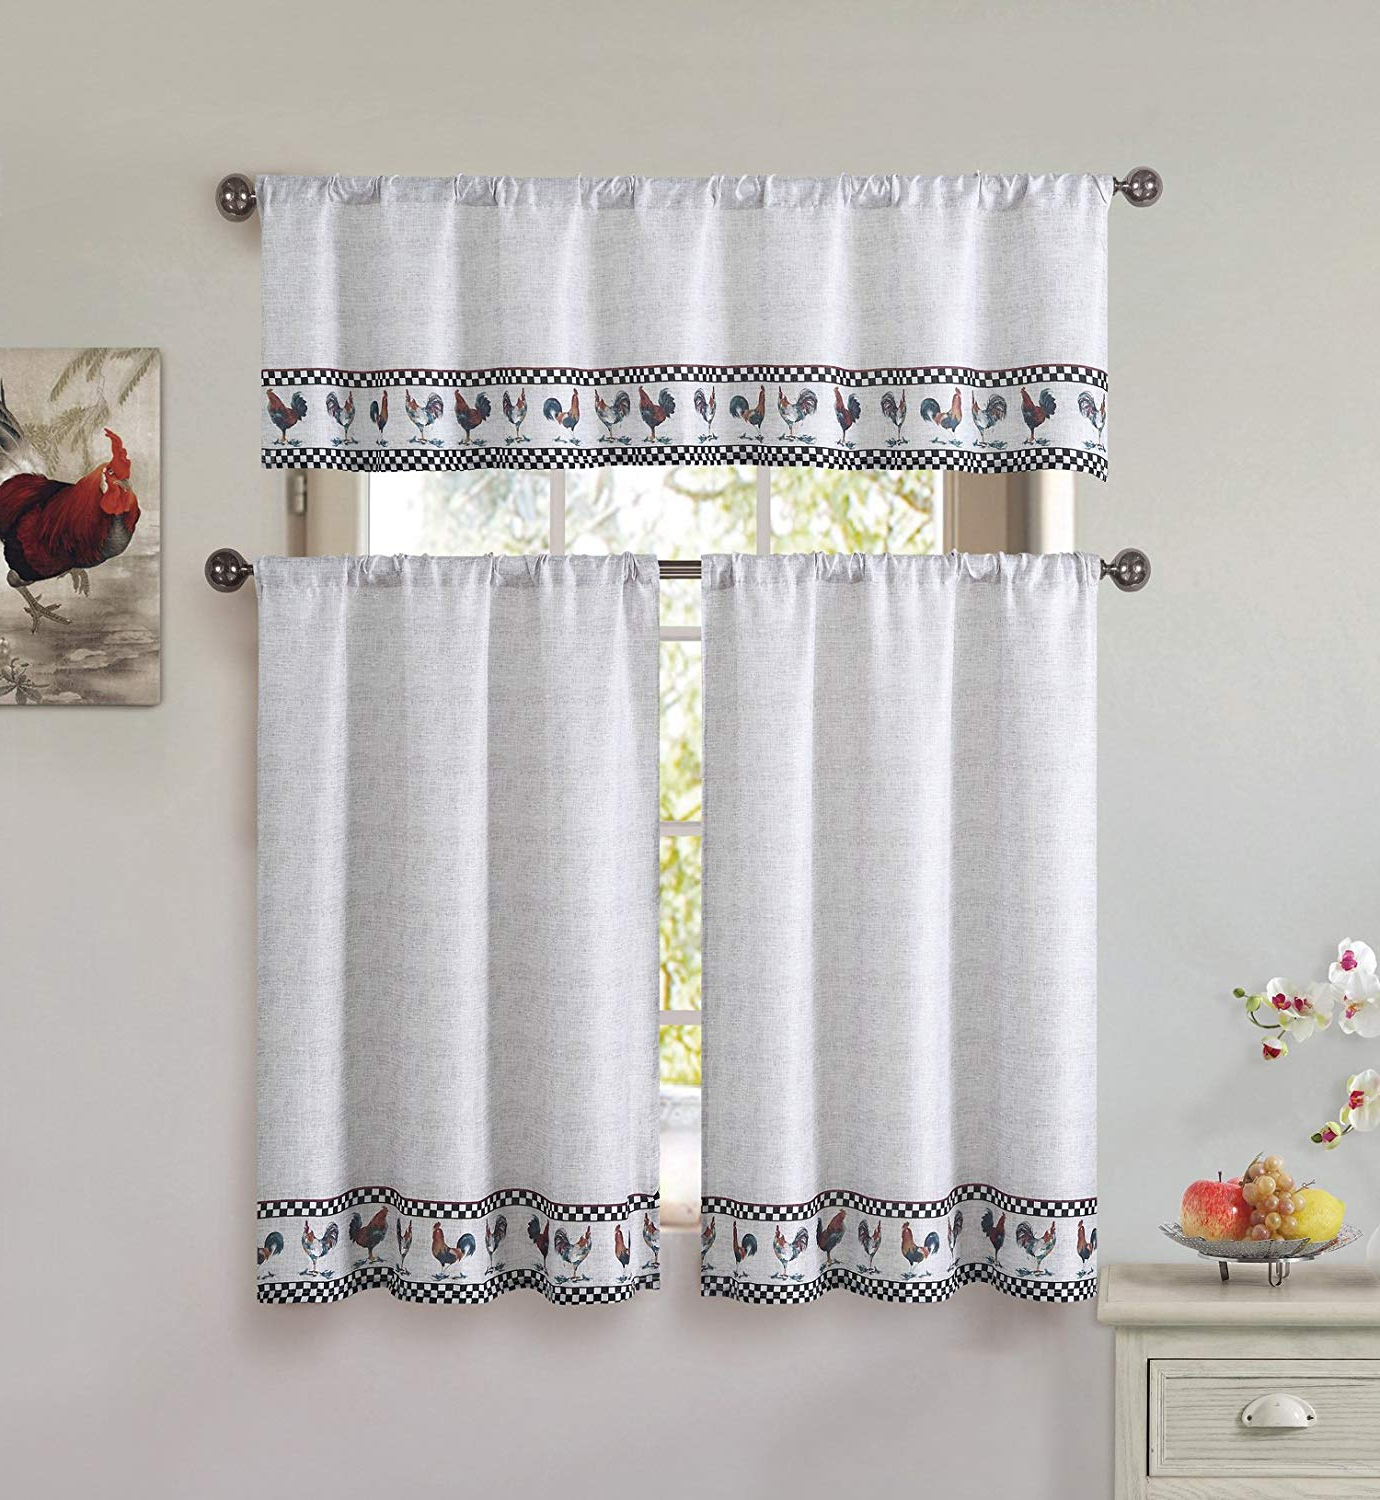 Embroidered 'coffee Cup' 5 Piece Kitchen Curtain Sets Throughout Well Known Cotton Blend 3 Piece Kitchen/cafe Tier Window Curtain Set: Rooster And  Check Design (Gallery 7 of 20)